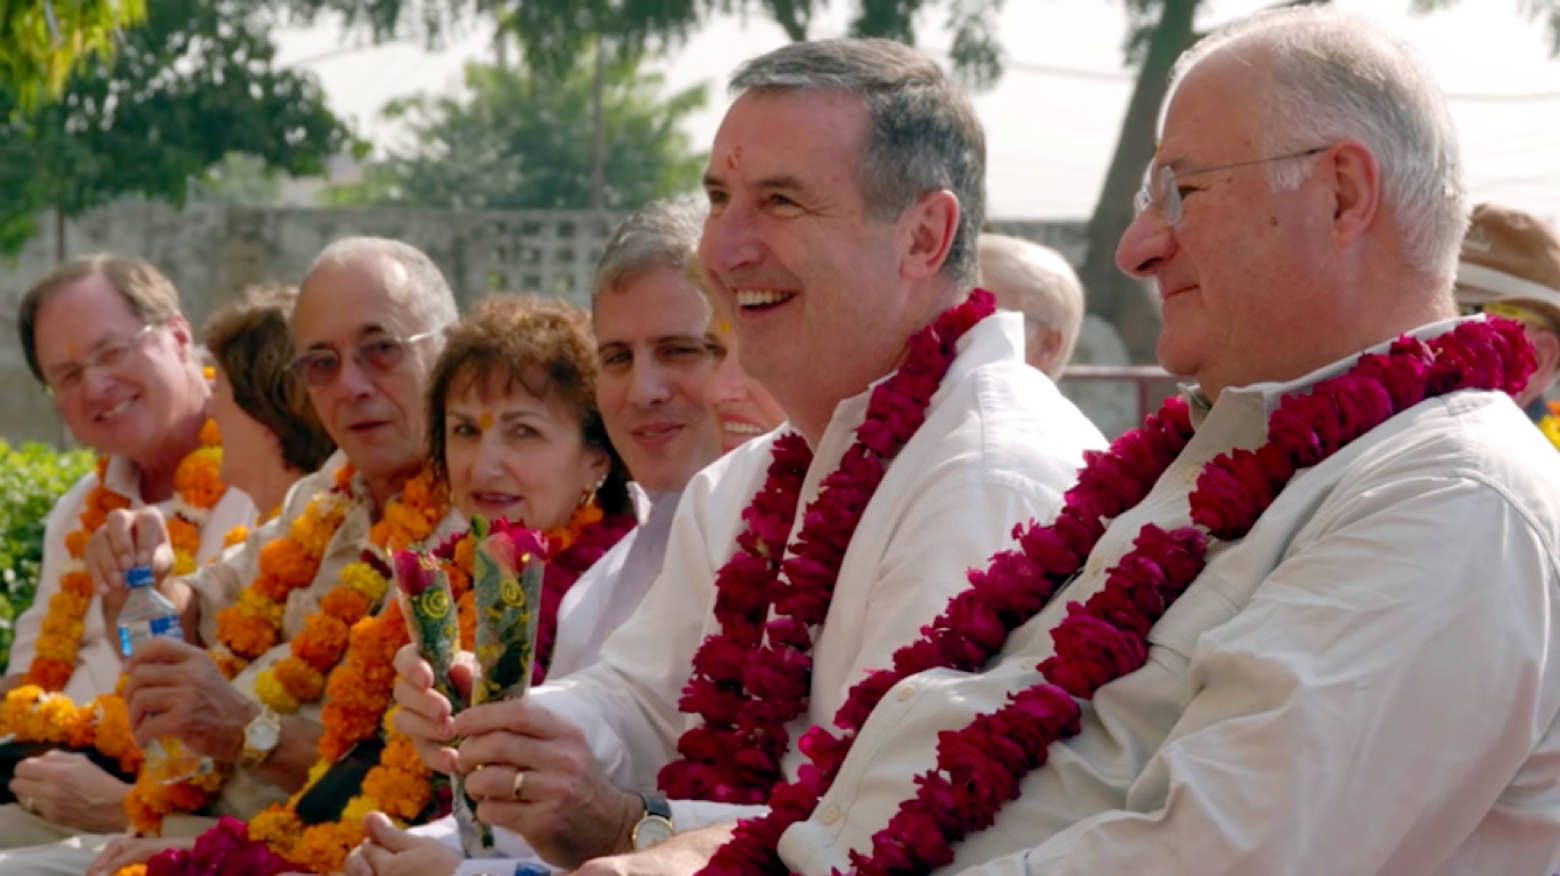 Joe Rickets and Alan Barkley sit next to each other. They wear all white with red leis draped around their necks.